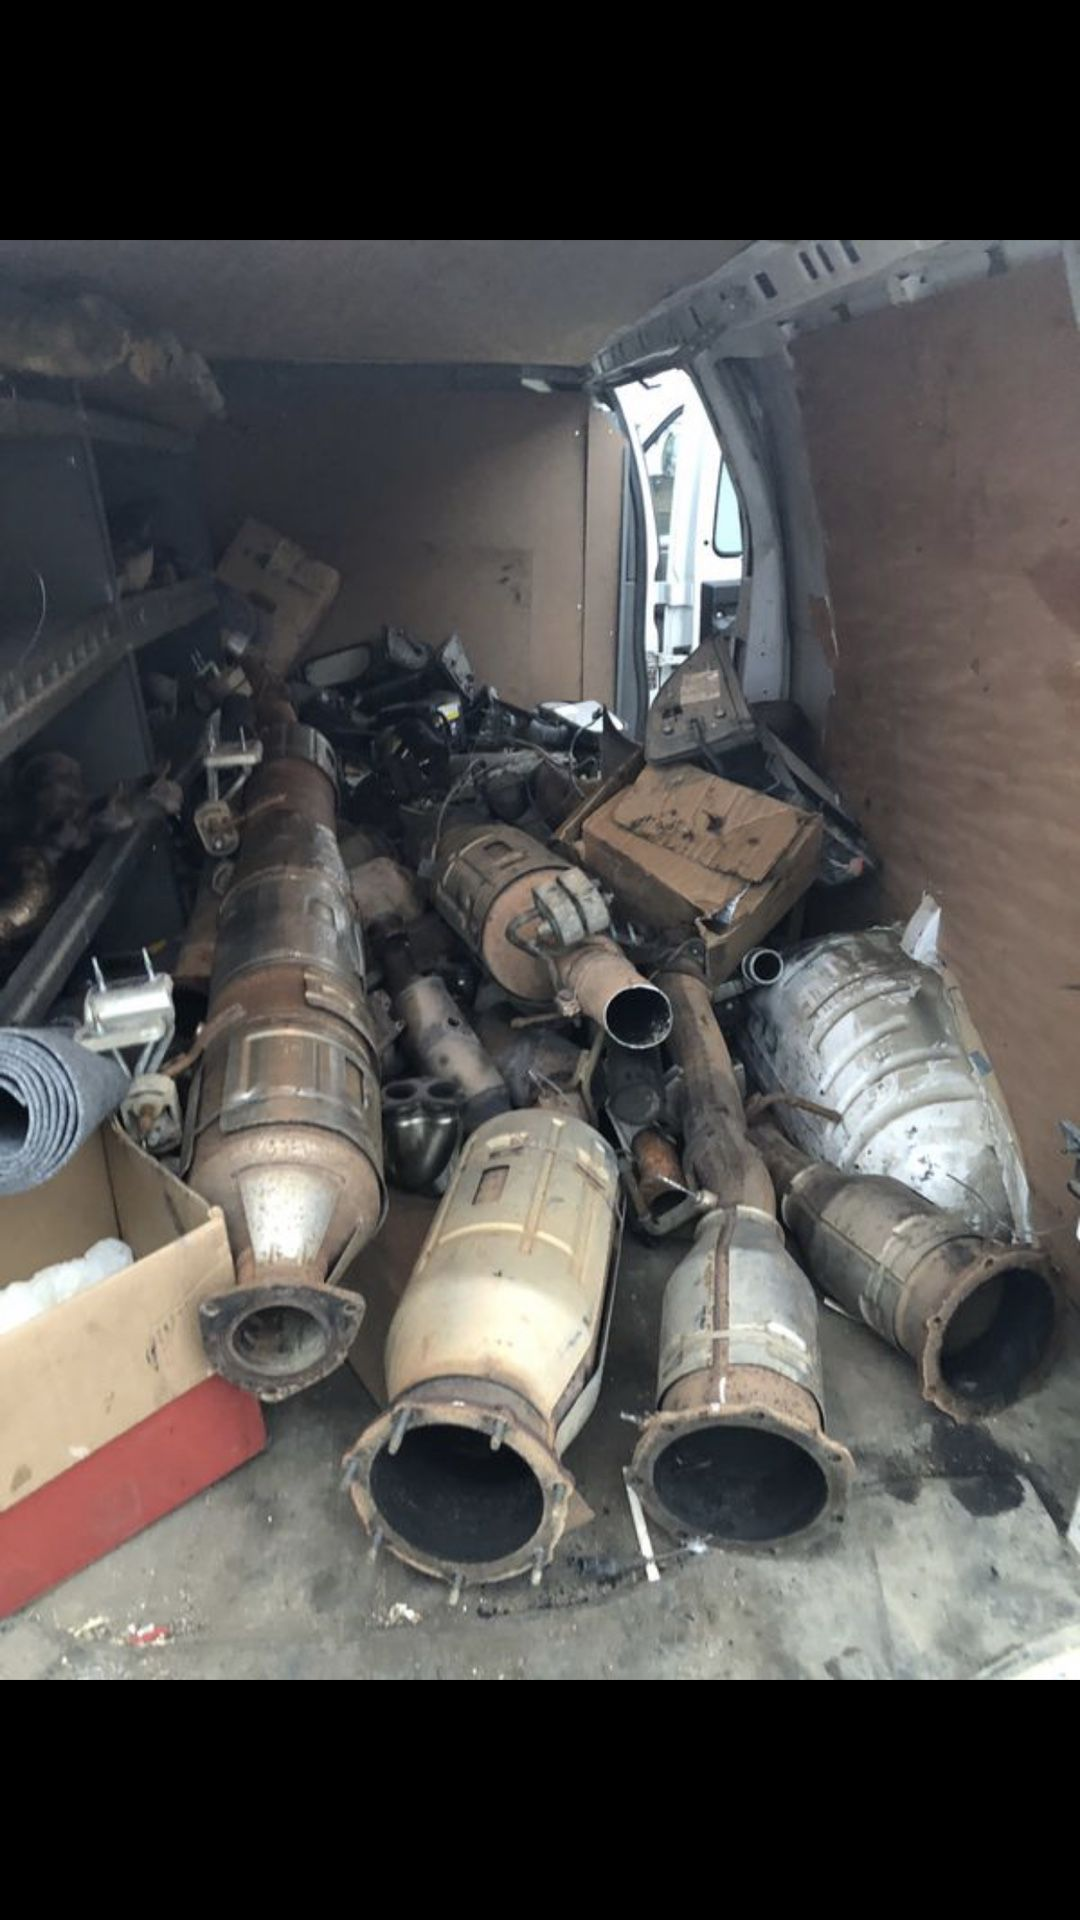 Photo Buying unwanted catalytic converters and DPFs. Paying top cash $$$. Will be in North Dakota all around. Let me know what you have